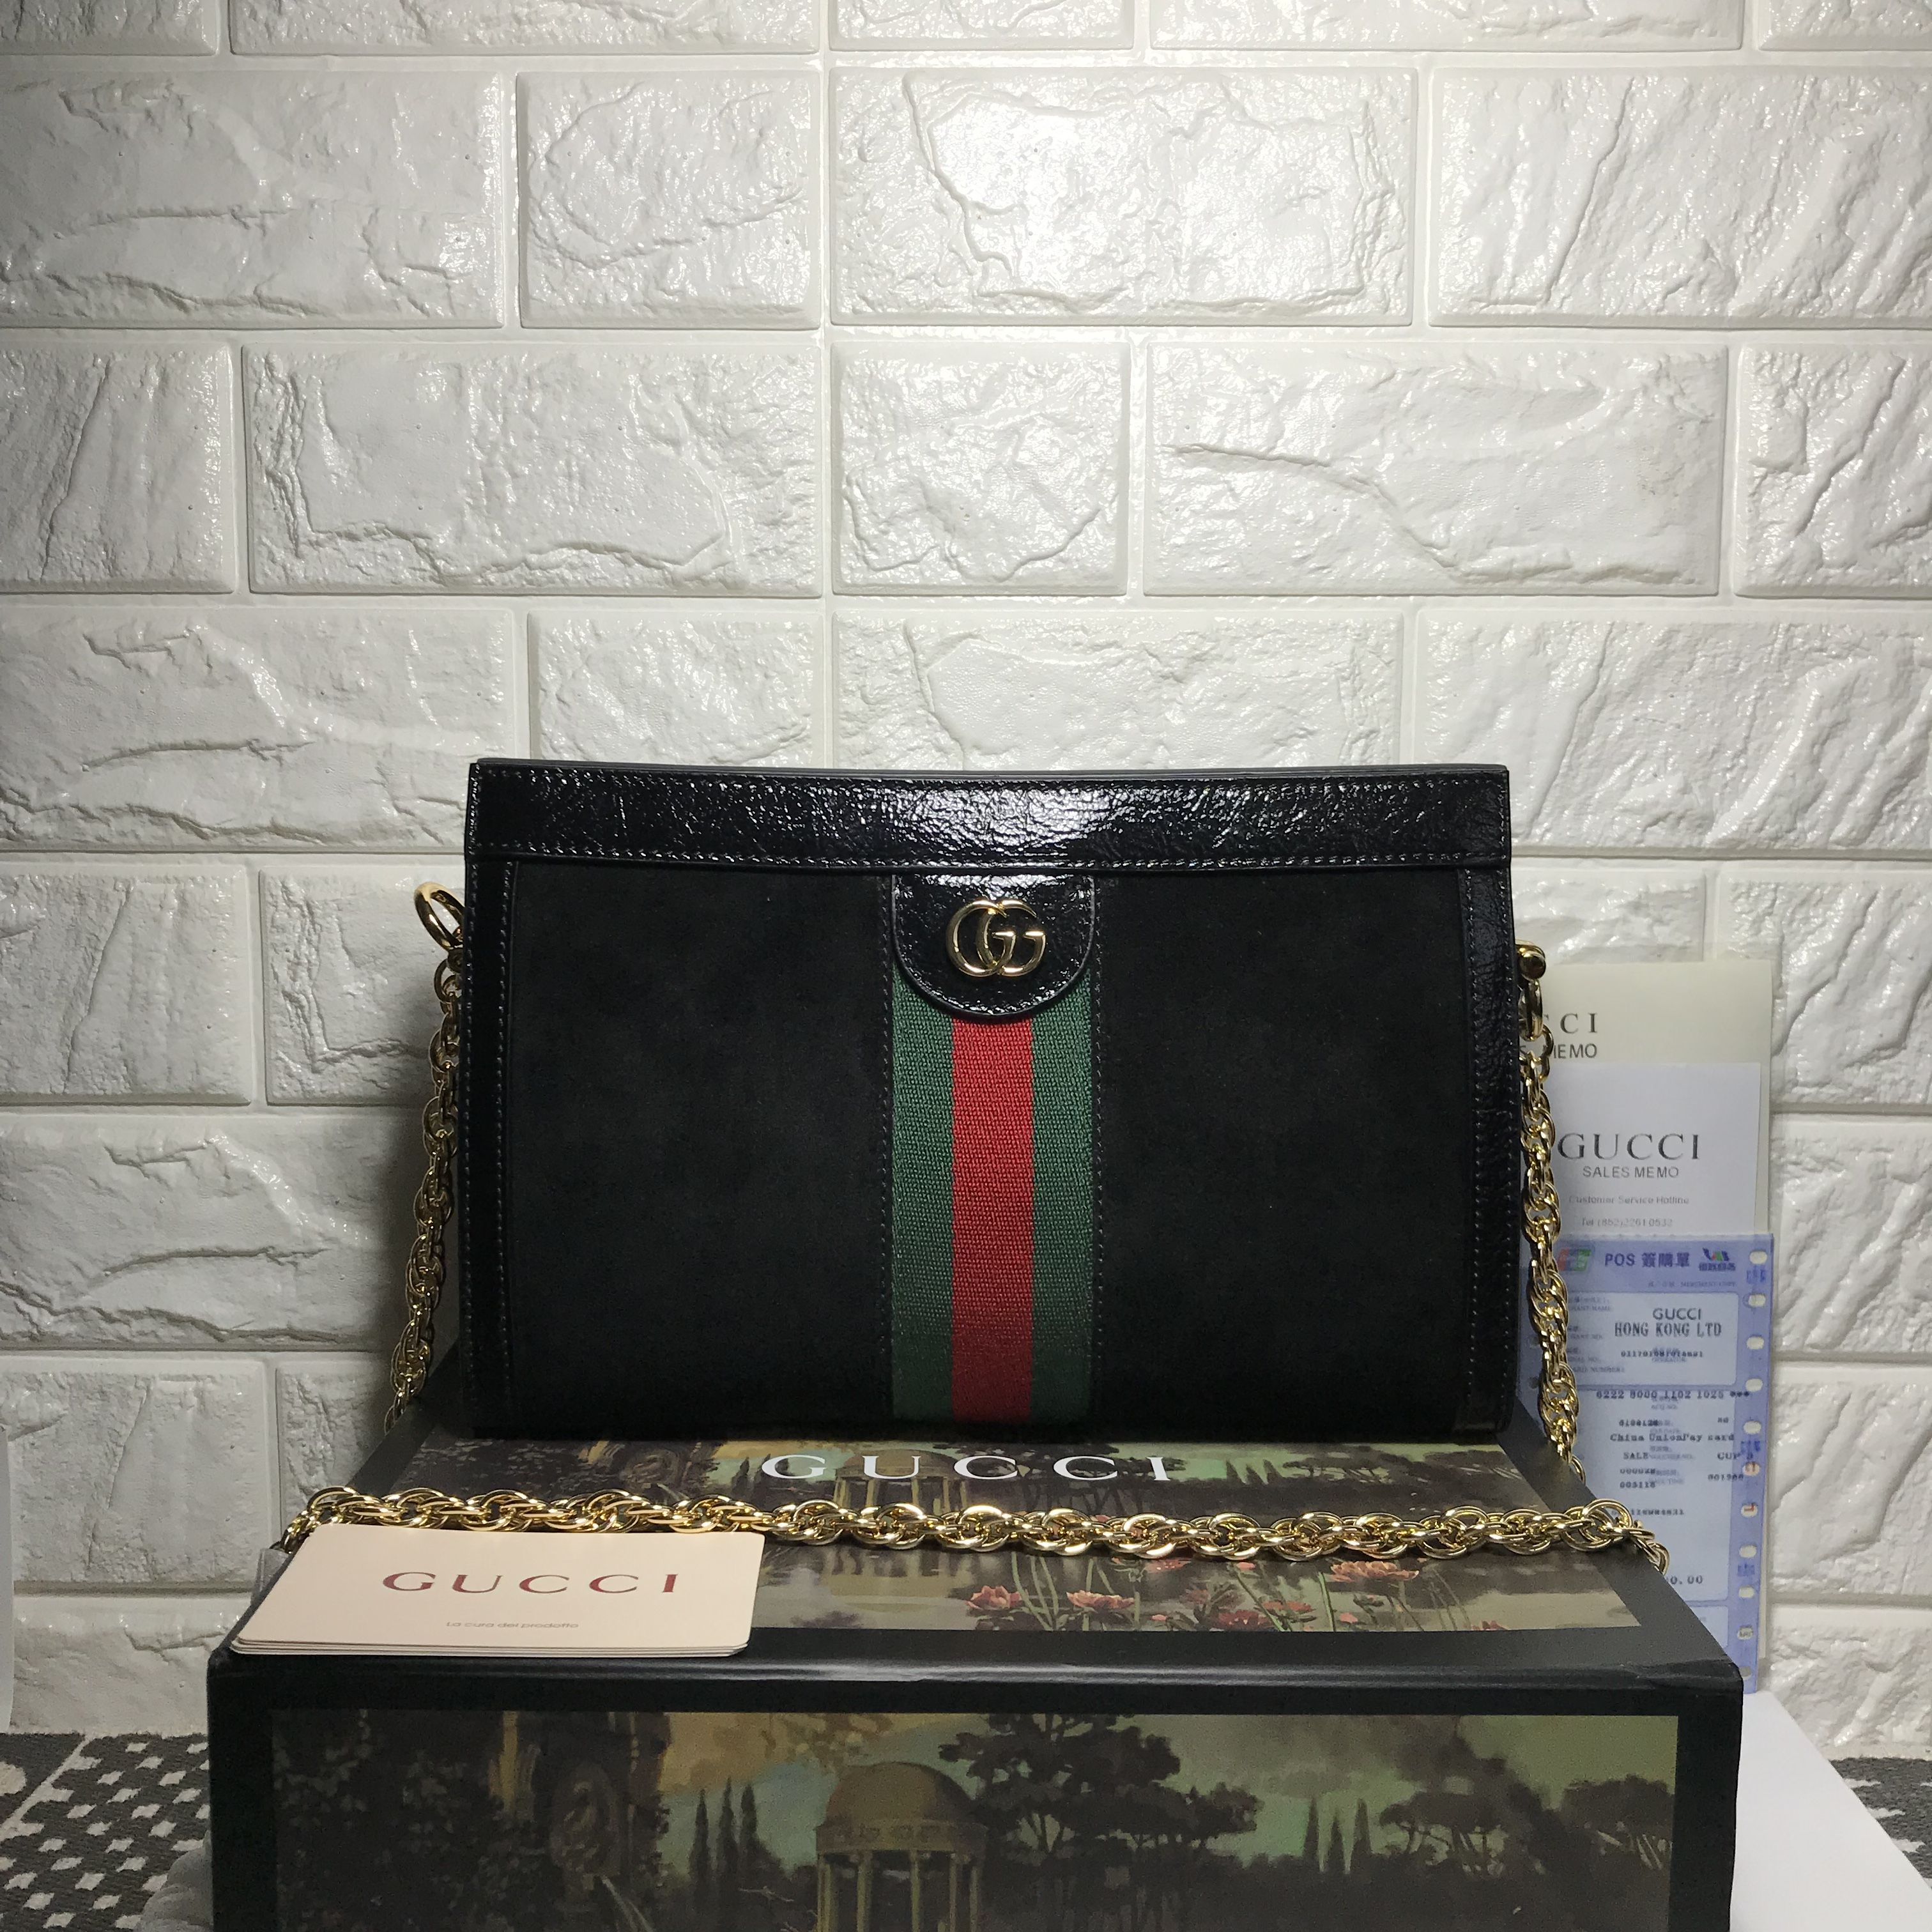 10beecad2 Gucci ophidia clutch purse with chain original leather version ...